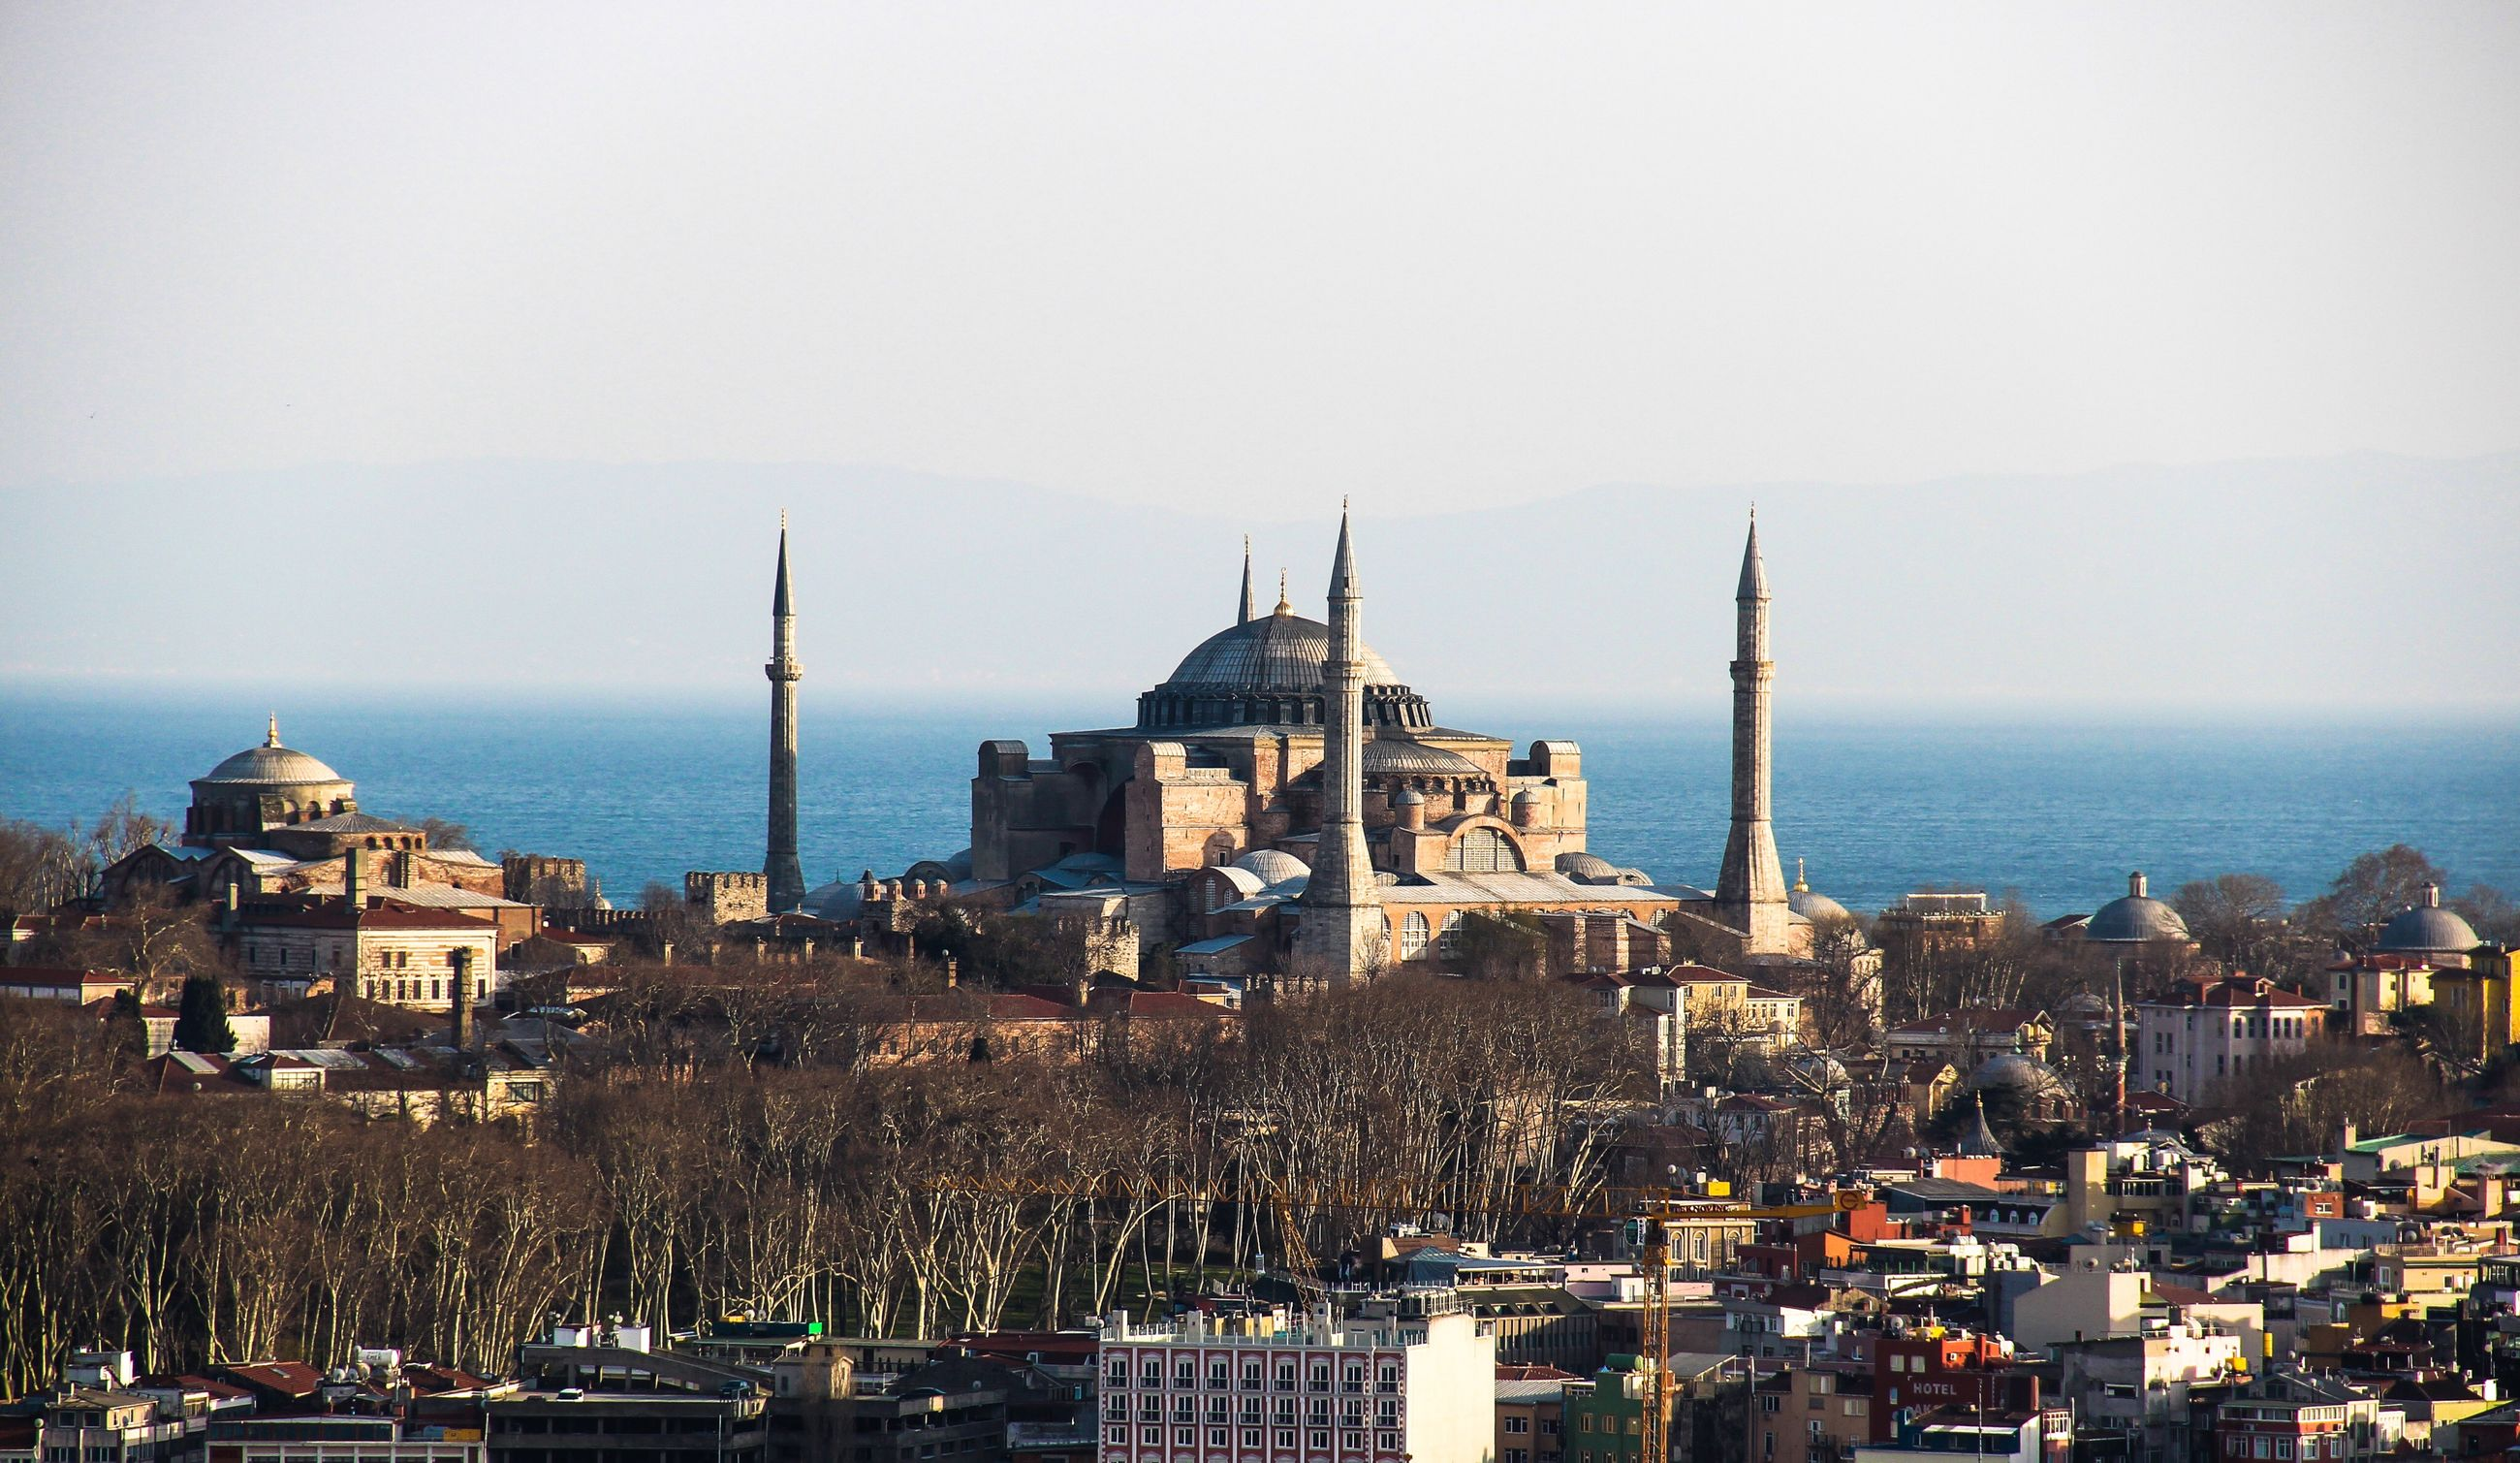 architecture, building exterior, built structure, sky, dome, city, place of worship, large group of people, outdoors, day